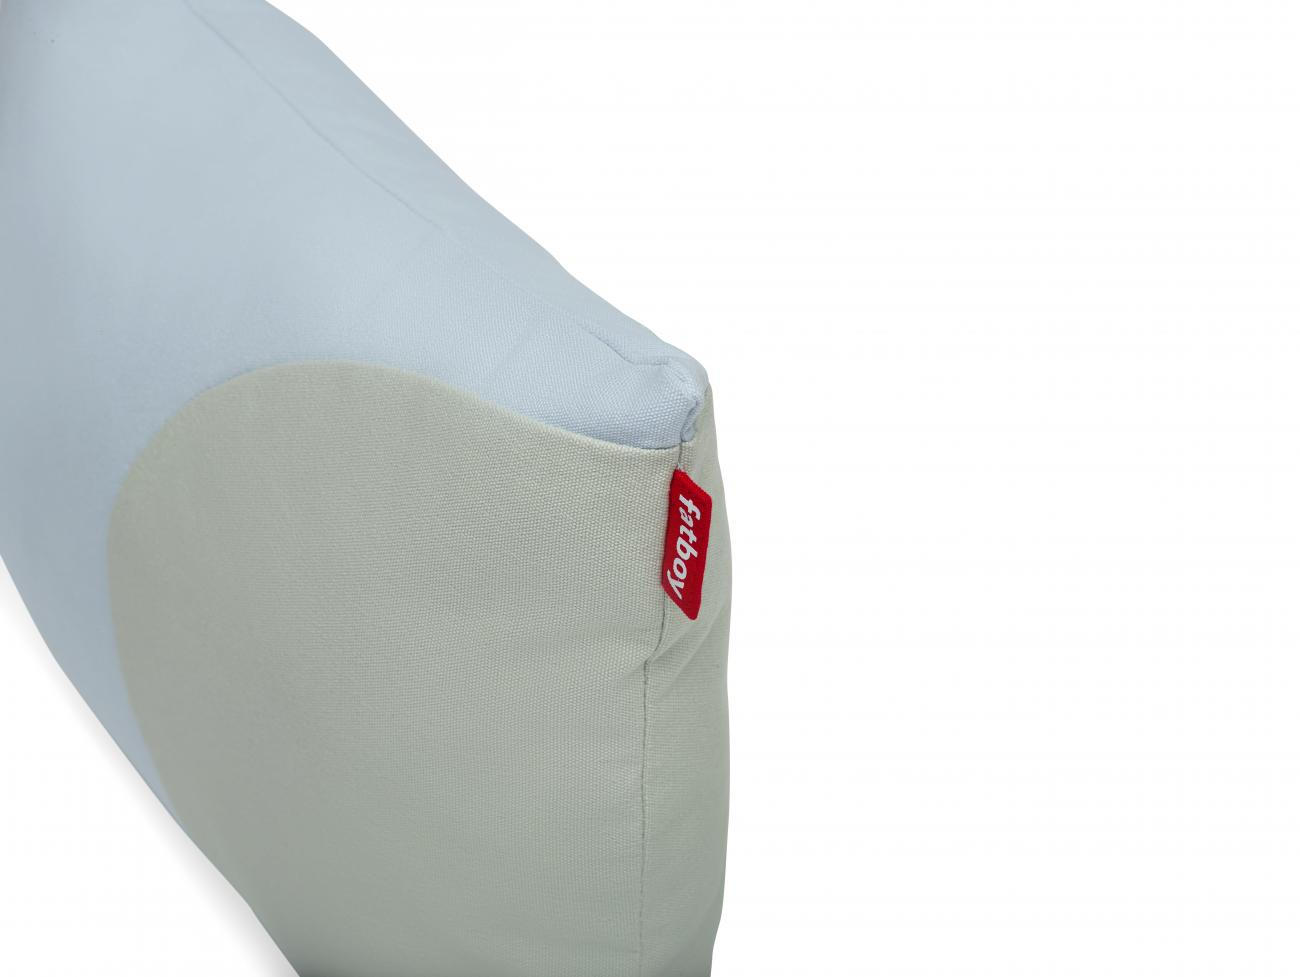 https://www.fundesign.nl/media/catalog/product/f/a/fatboy_pop-pillow_frost_side_srgb.jpg